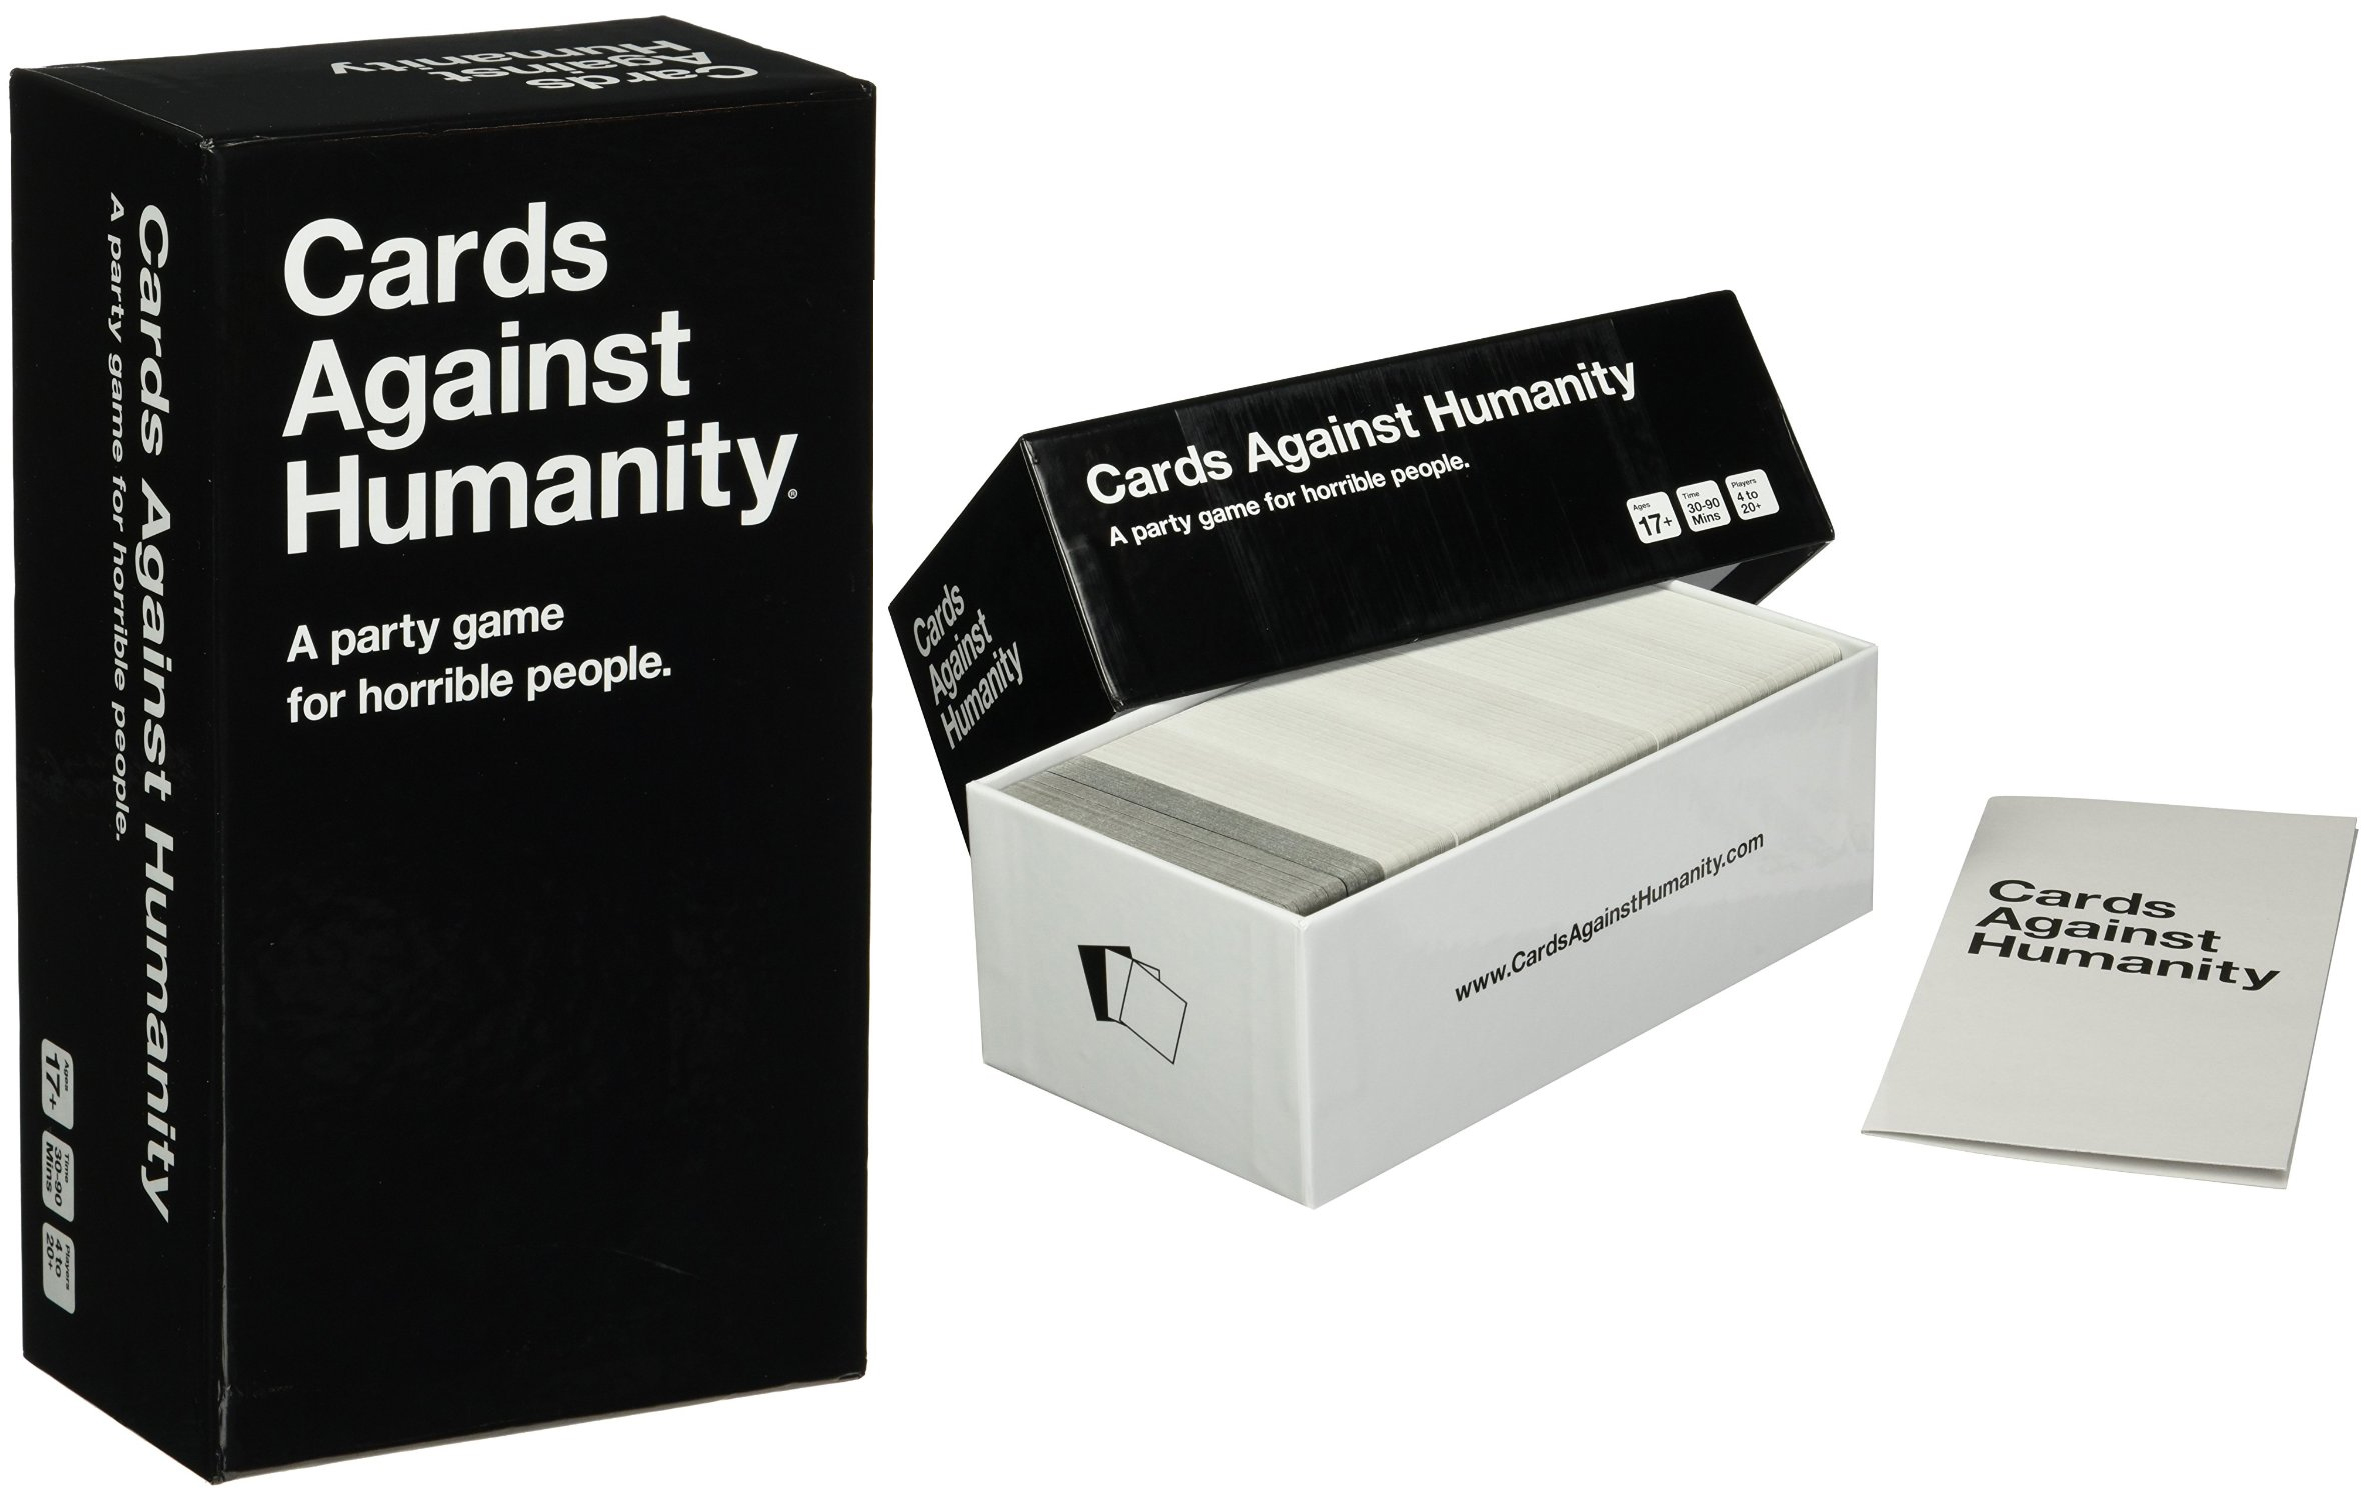 fathers day gift ideas 2016 Cards Against Humanity